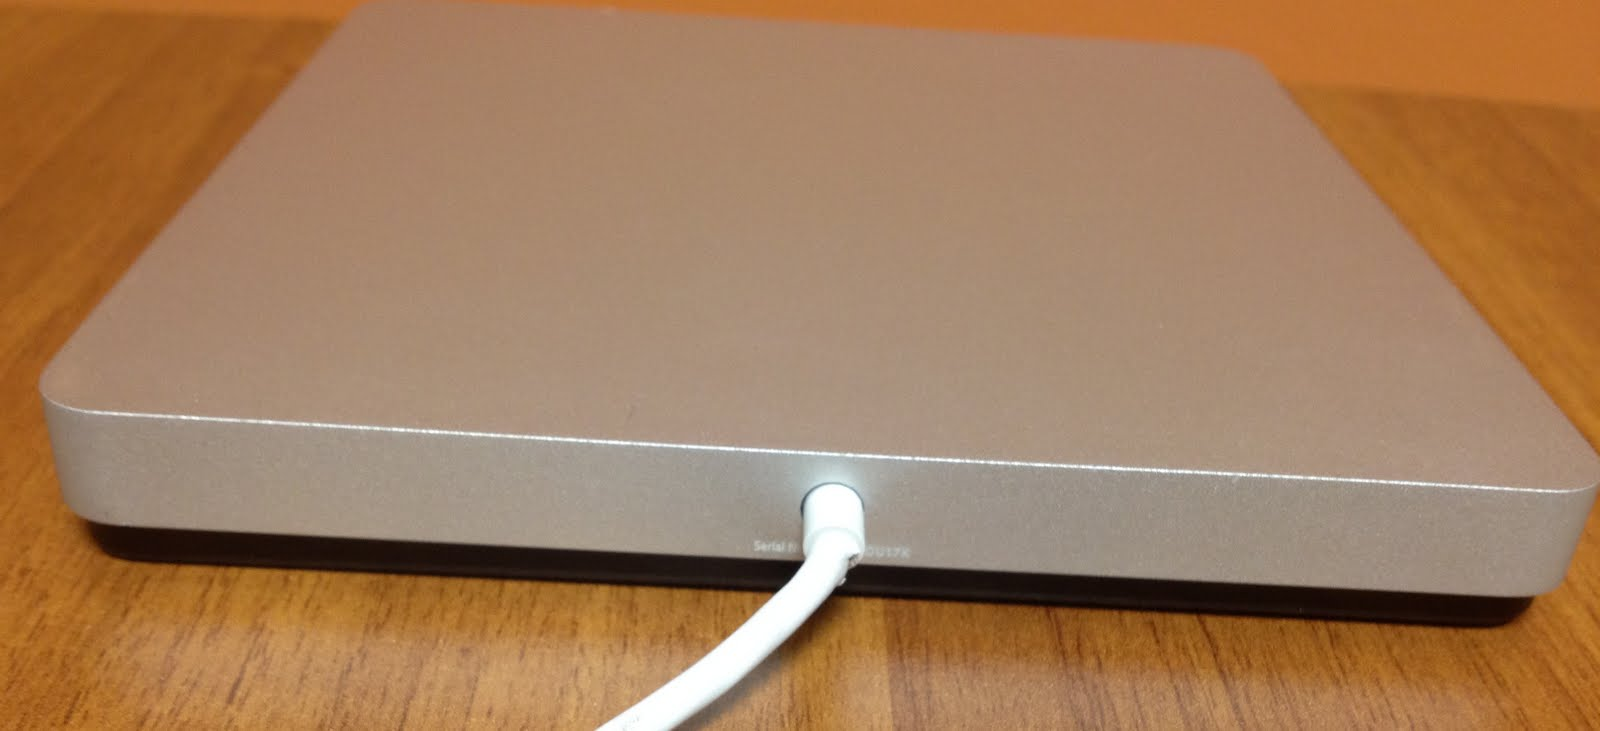 How to forcibly eject a CD/DVD from a MacBook Air USB SuperDrive